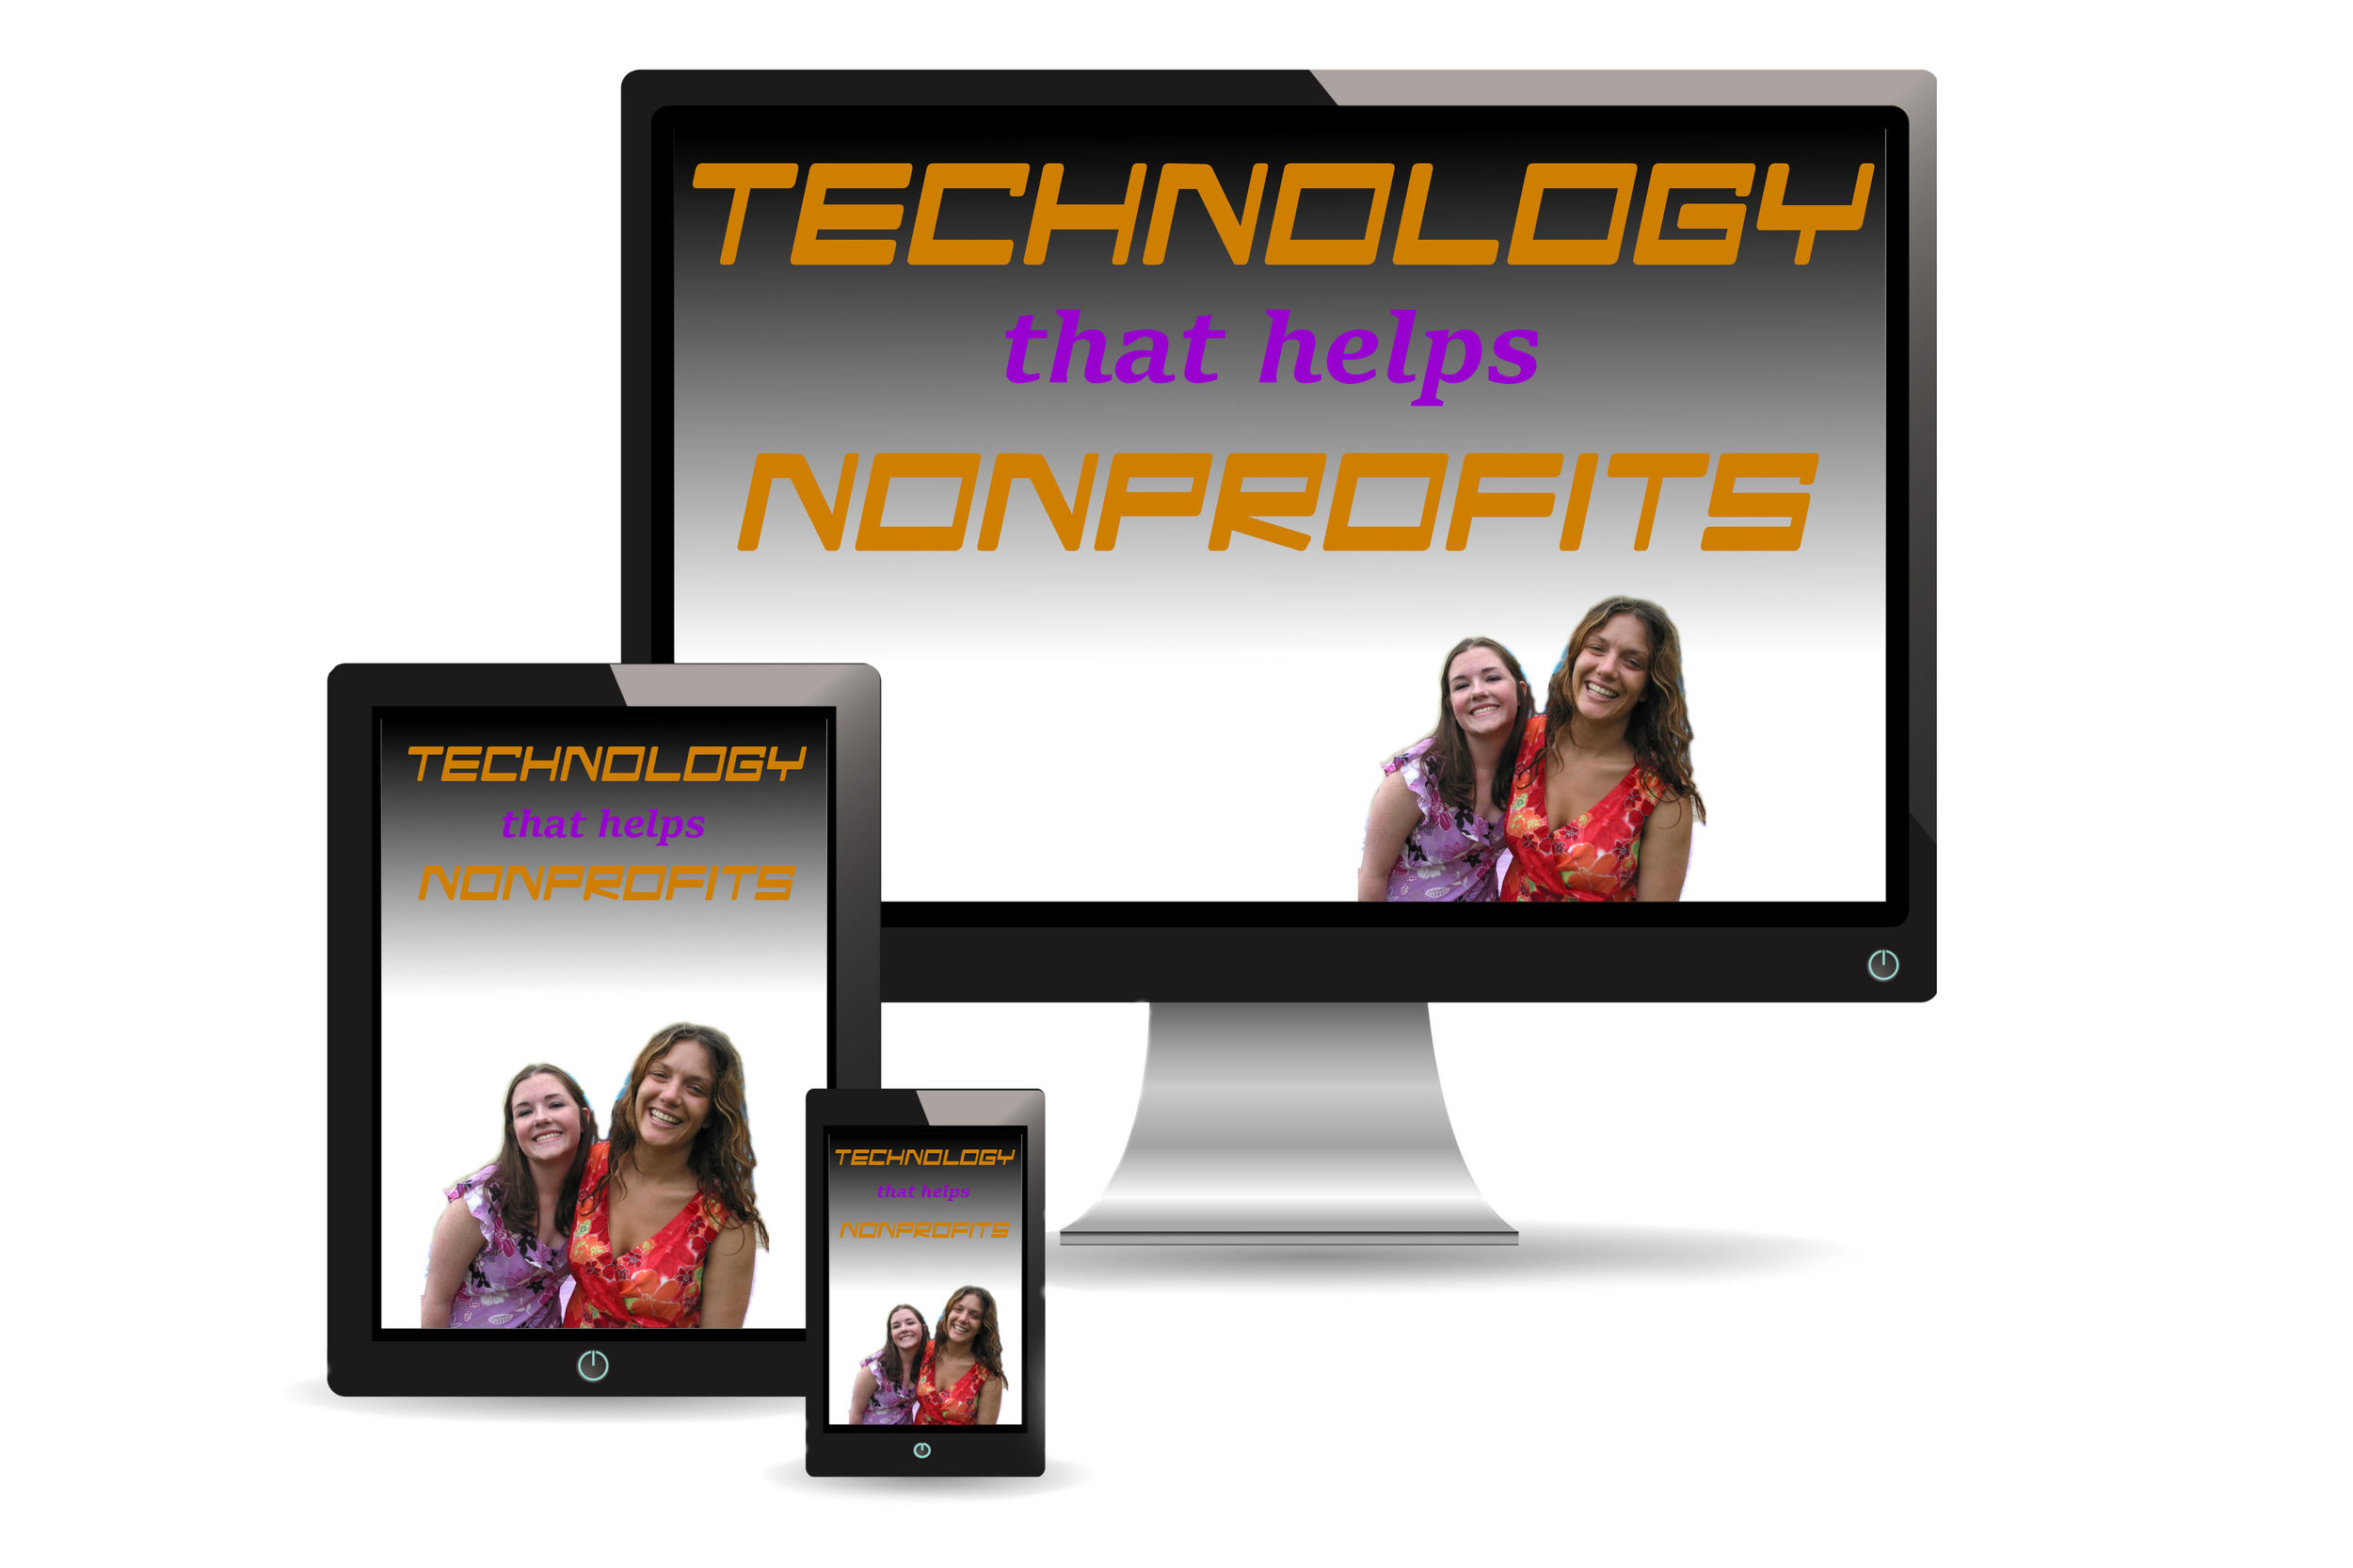 Technology that helps NonProfits